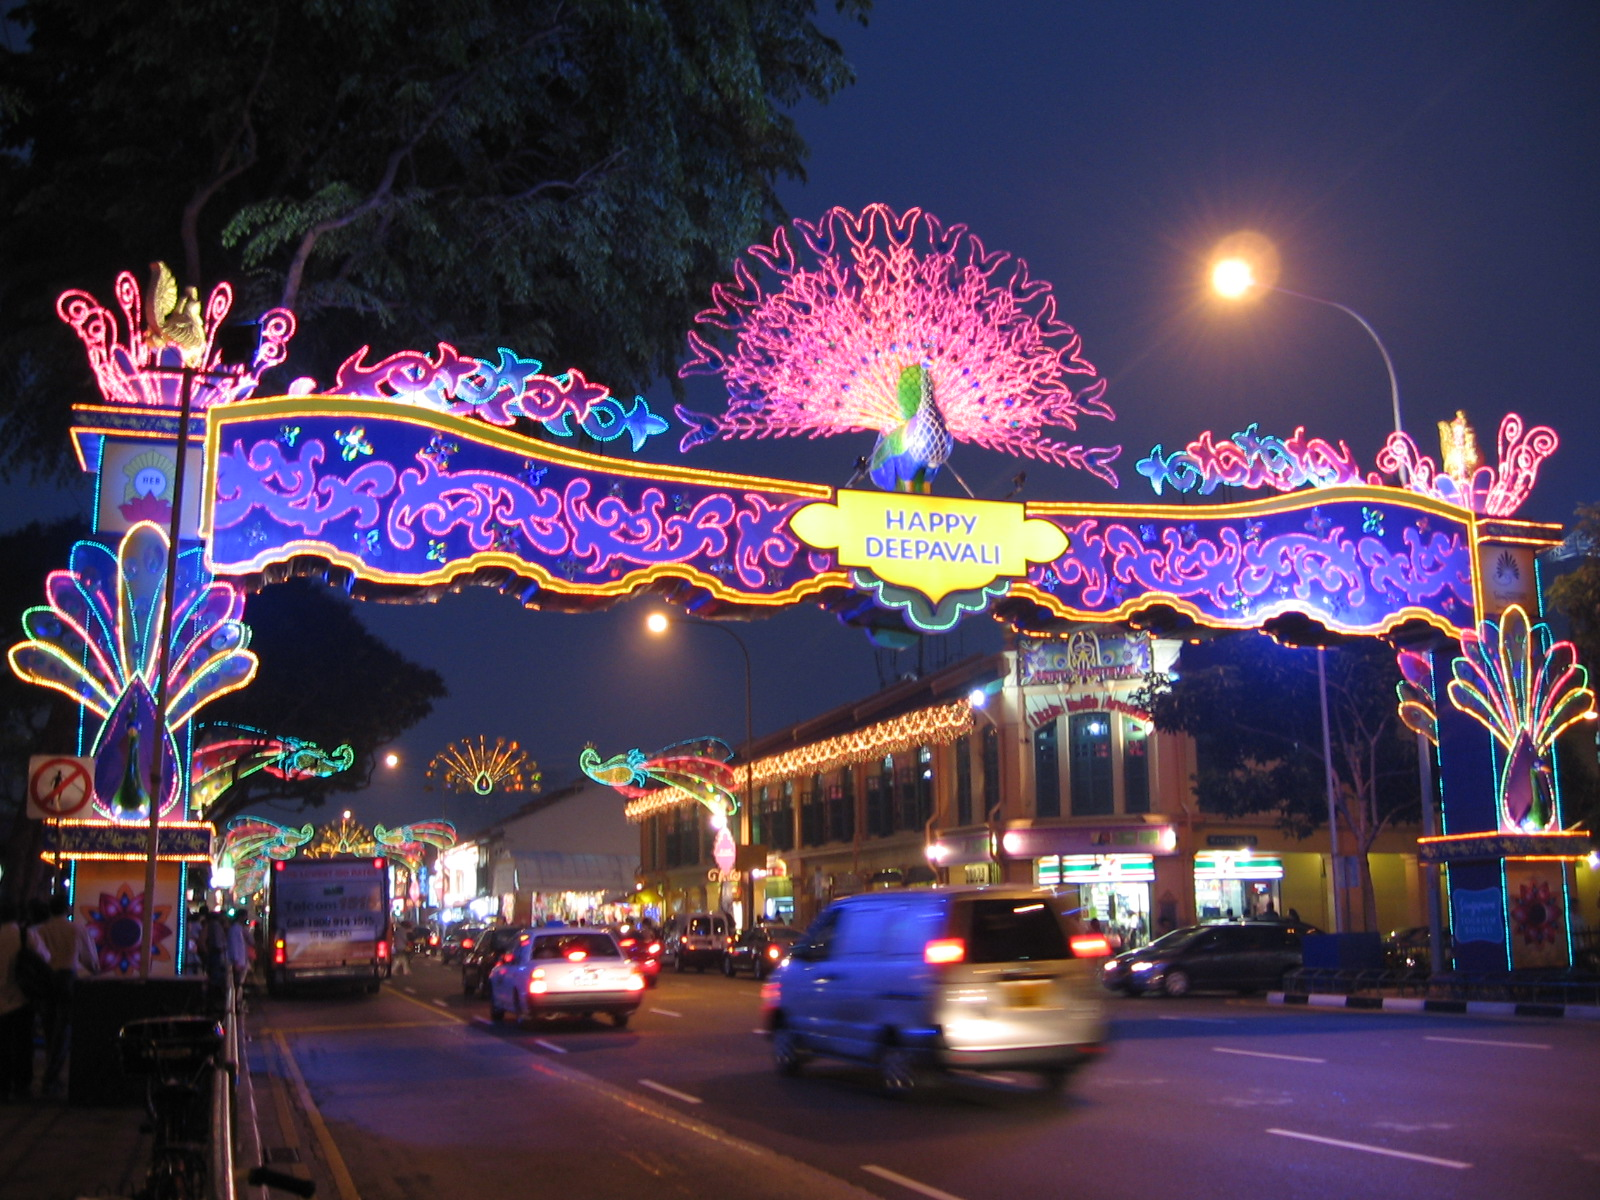 Foto wikimedia commons per Deepawali in Little India, Singapore